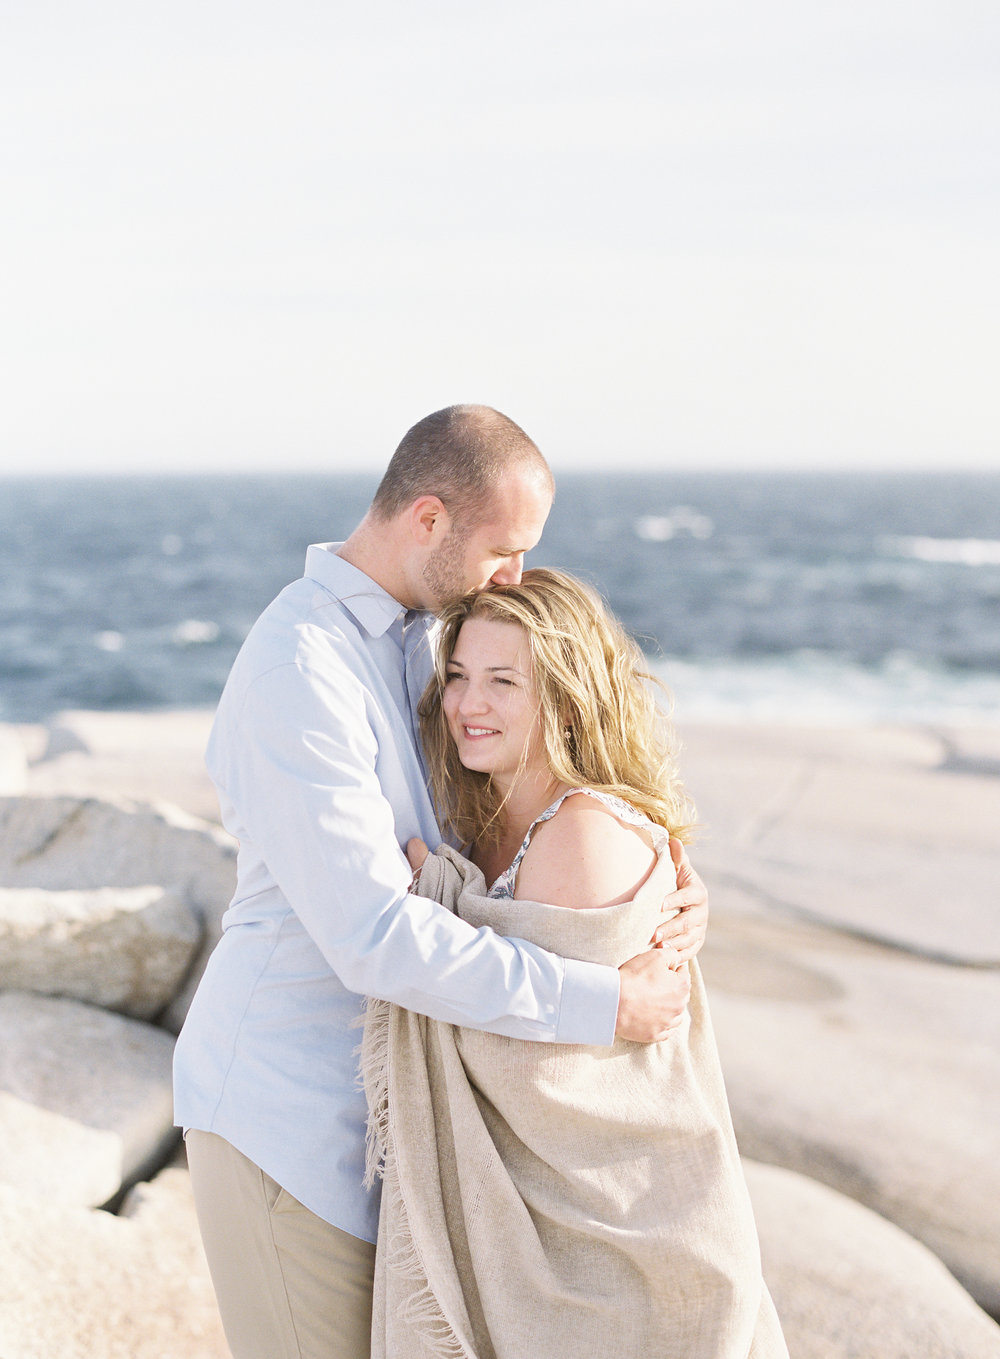 Jacqueline Anne Photography - Alex and Andrew Engagement at Peggy's Cove - Halifax-109.jpg